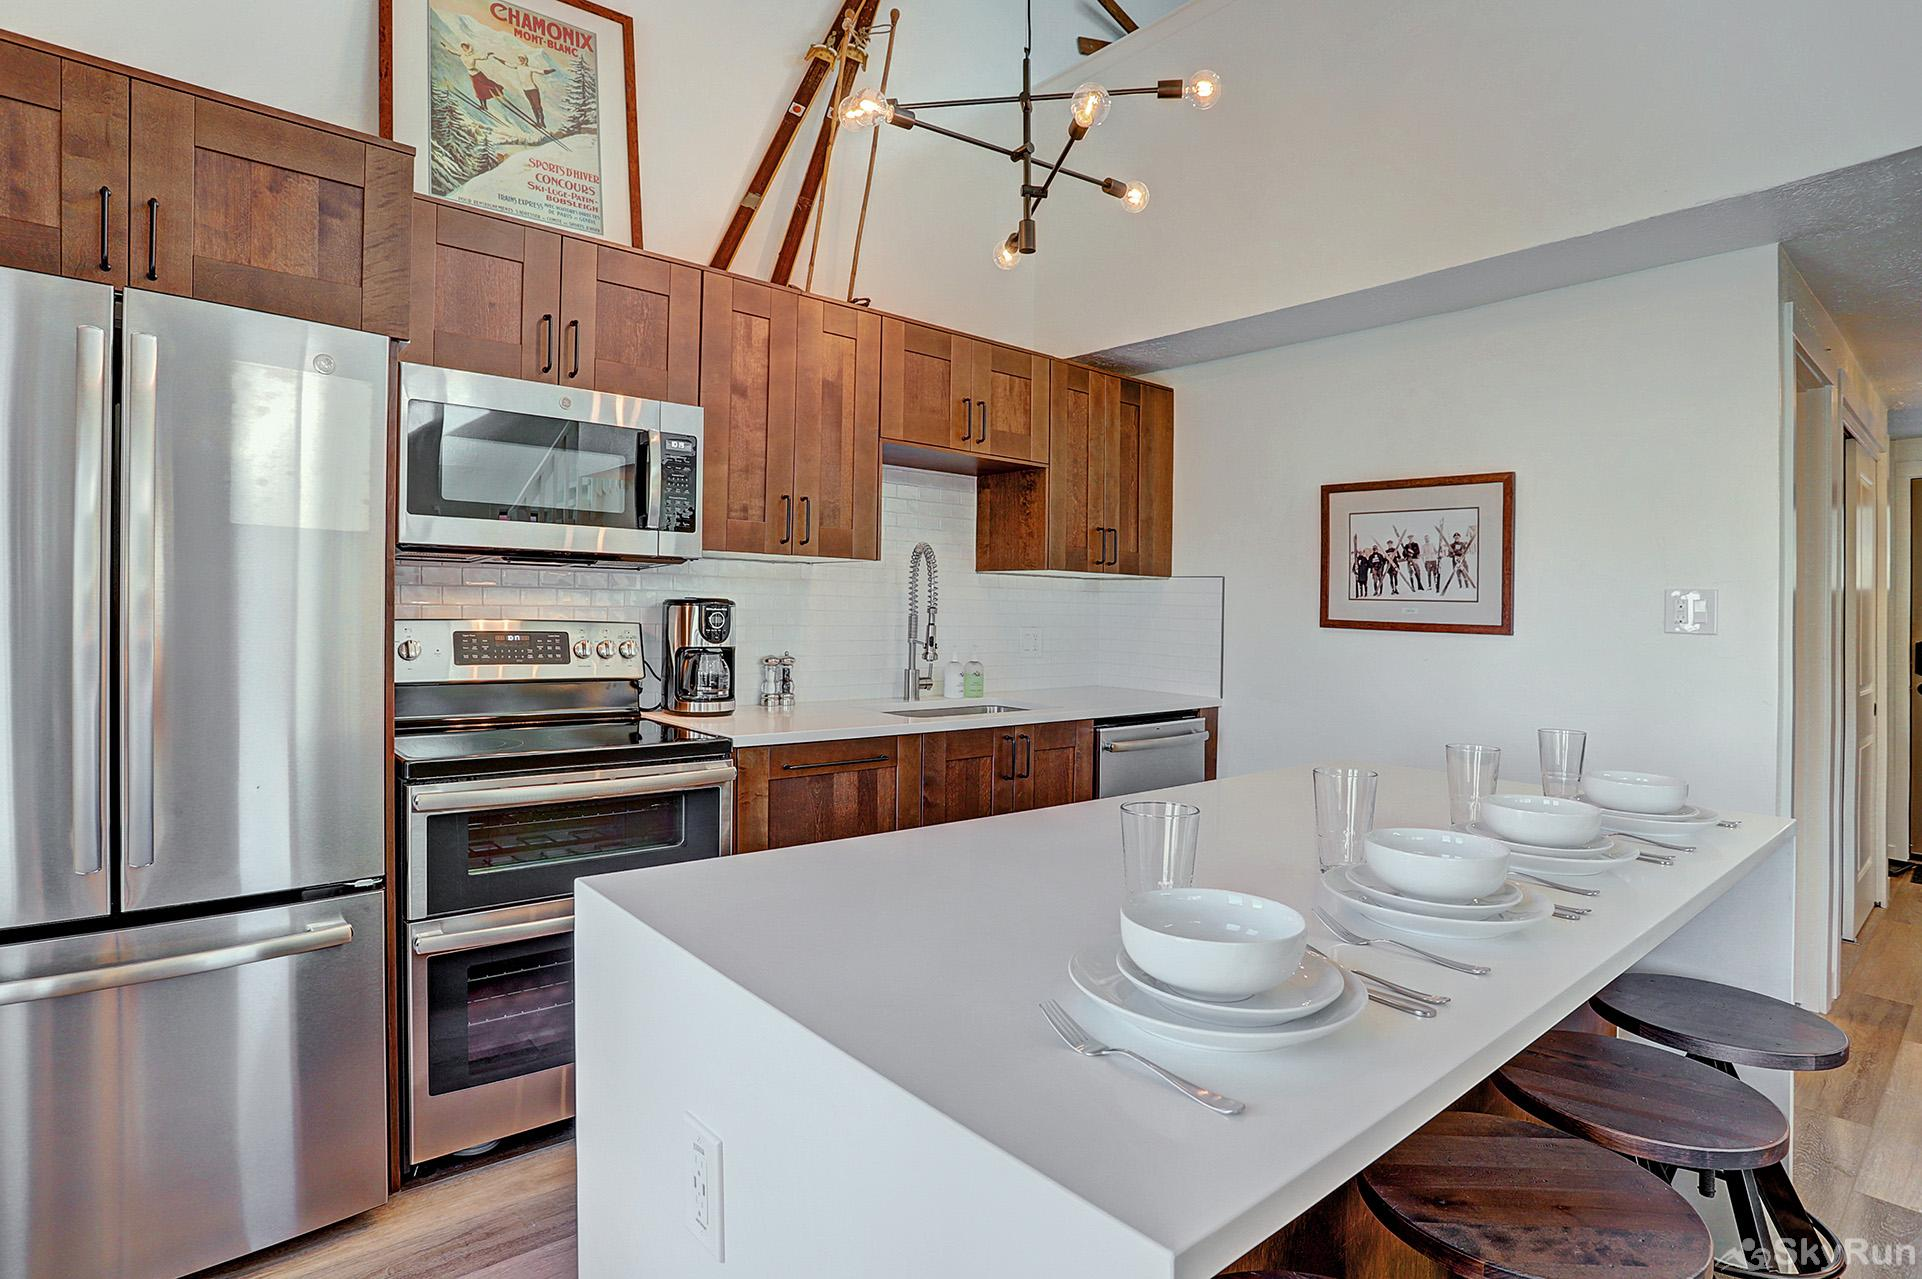 Lances West 13 Fully equipped kitchen updated with modern appliances